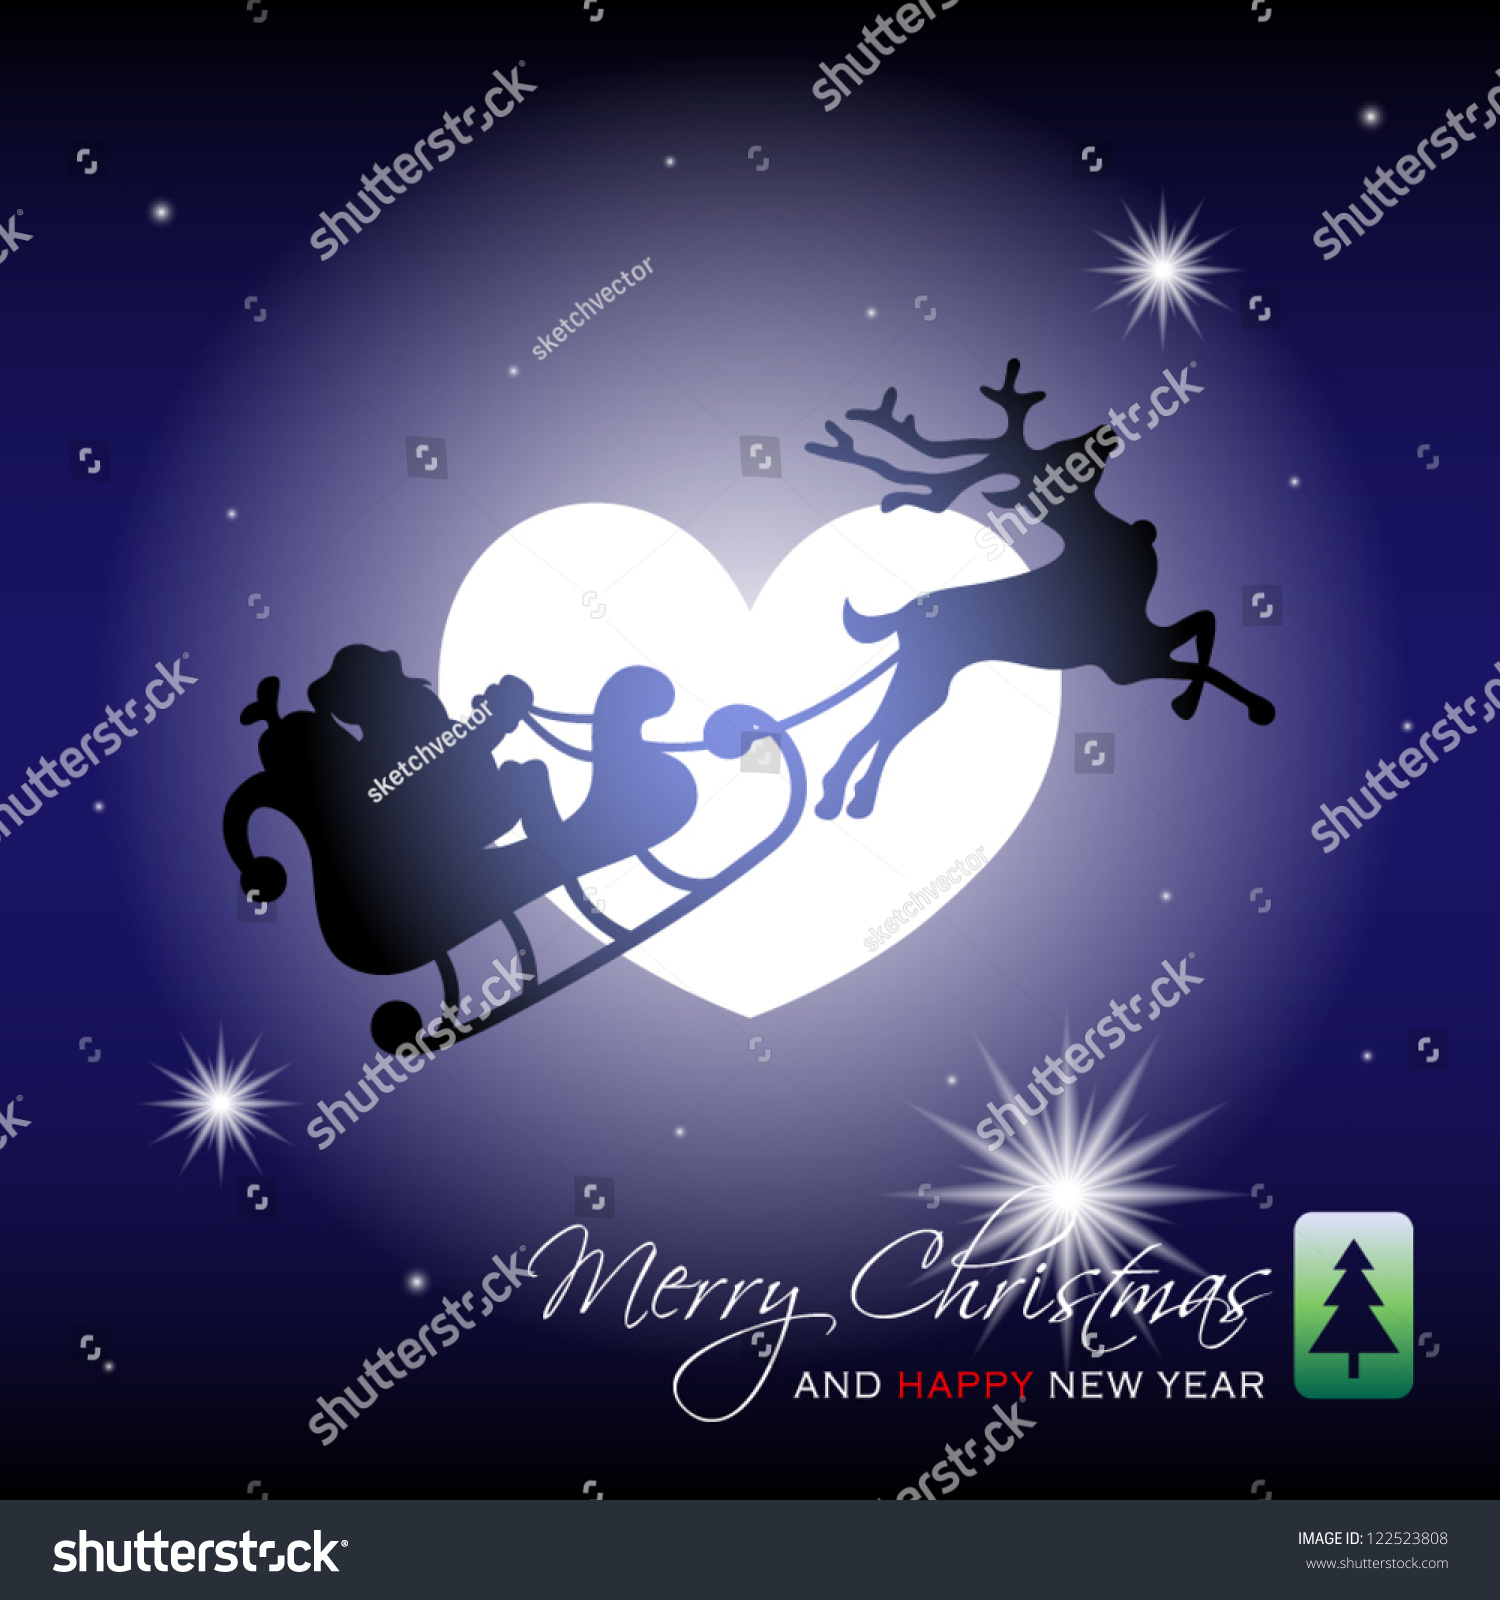 ... Moon Vector illustration of silhouette of santa claus with sleigh